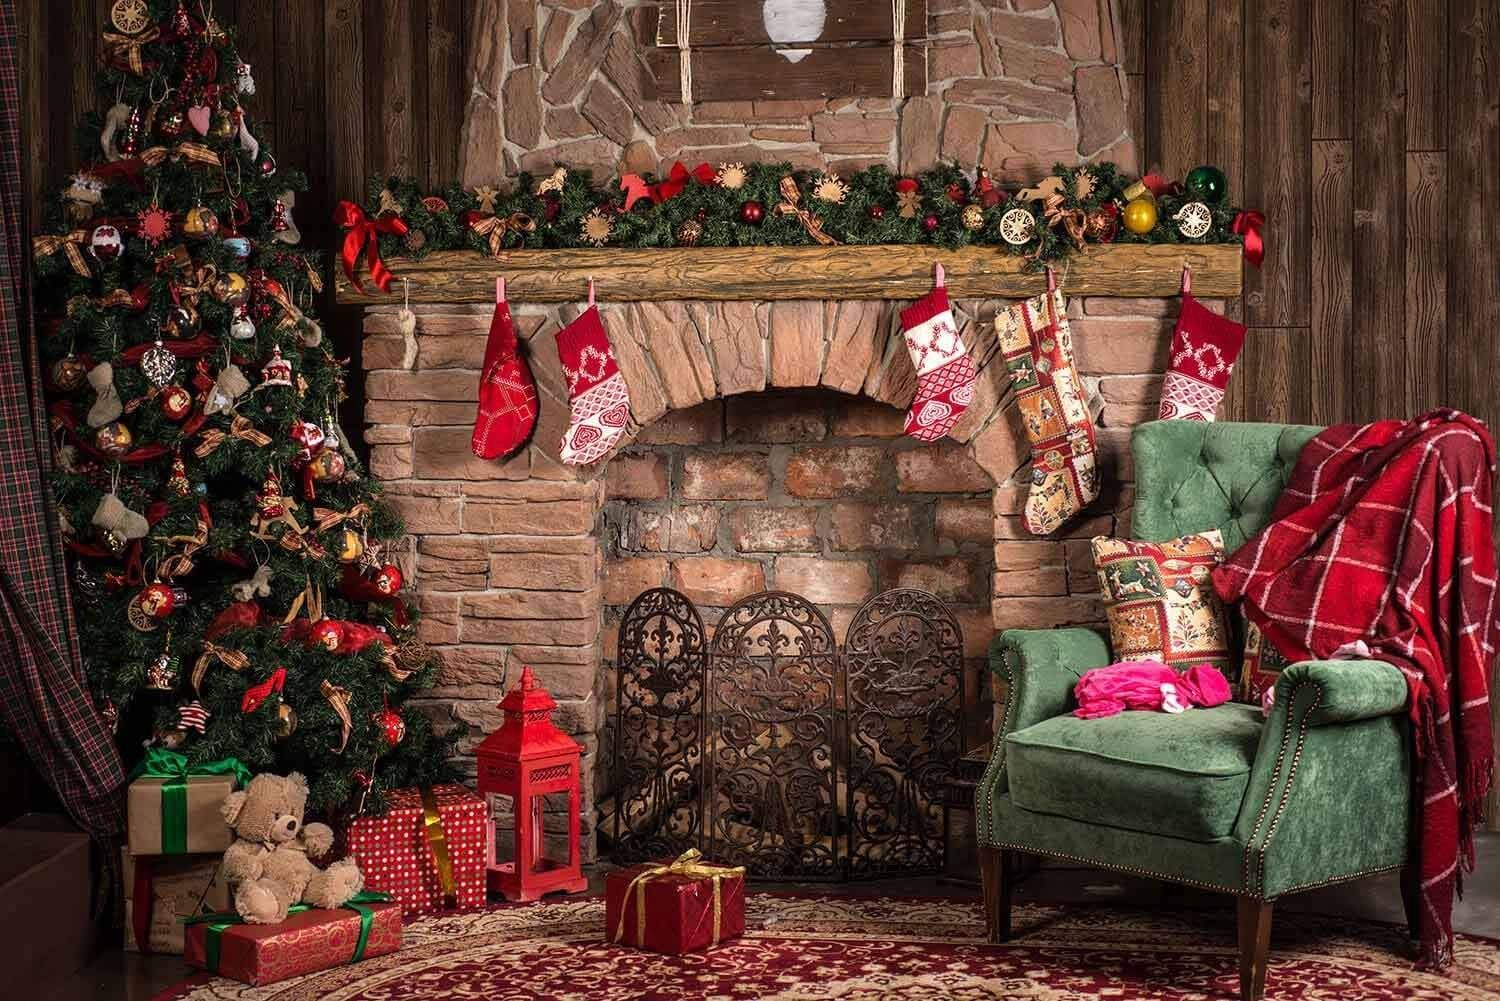 Christmas Interior Decorated With Green Chair Photography Backdrop J 0803 Christmas Tree And Fireplace Christmas Interiors Christmas Backdrops